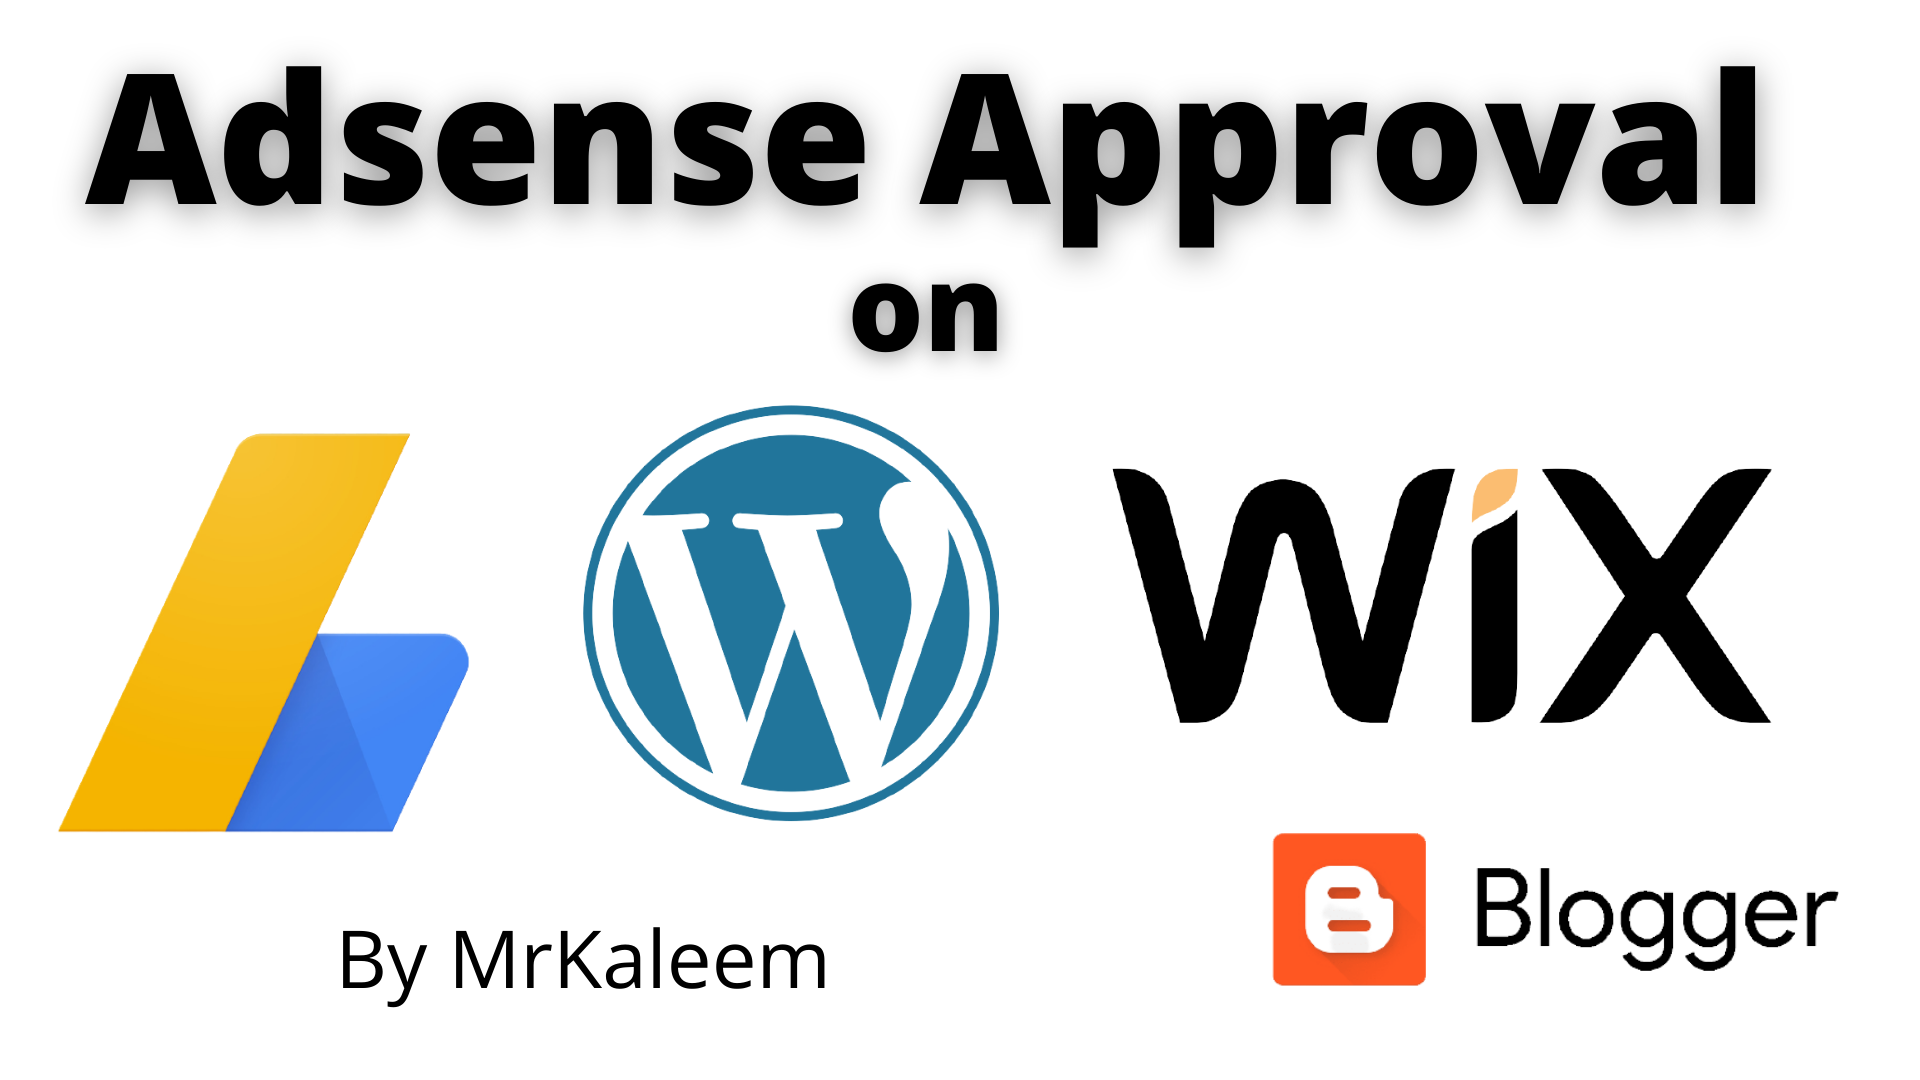 I will Approve Adsense on Your WebSite